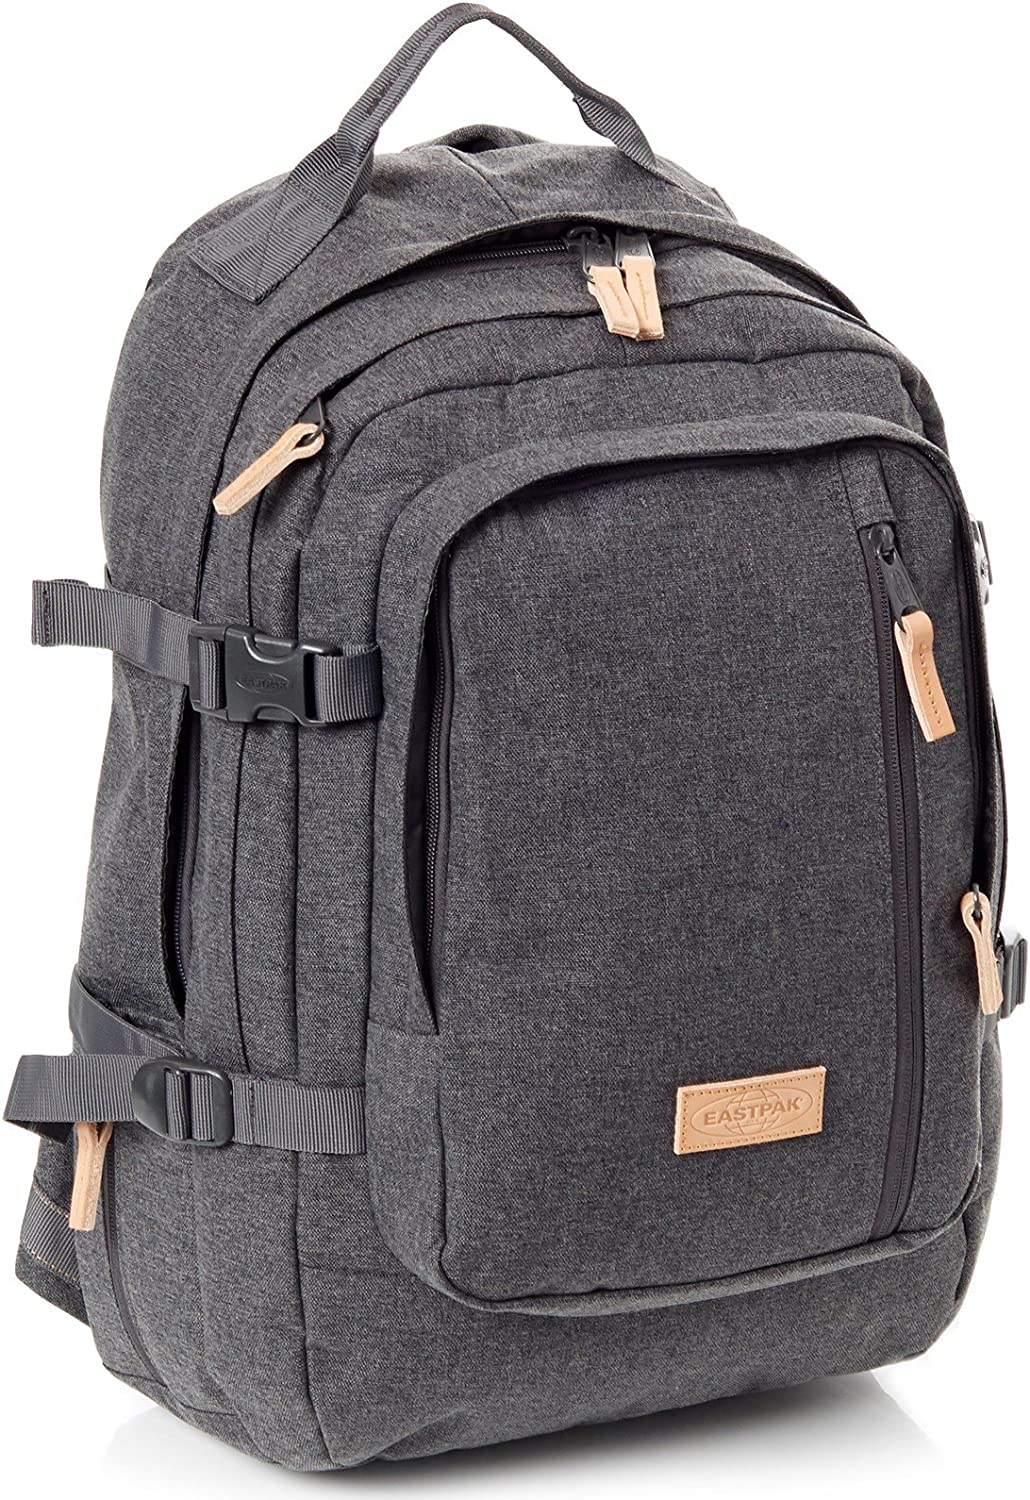 Eastpak Mochila de volker Black Denim One Size: Amazon.es ...